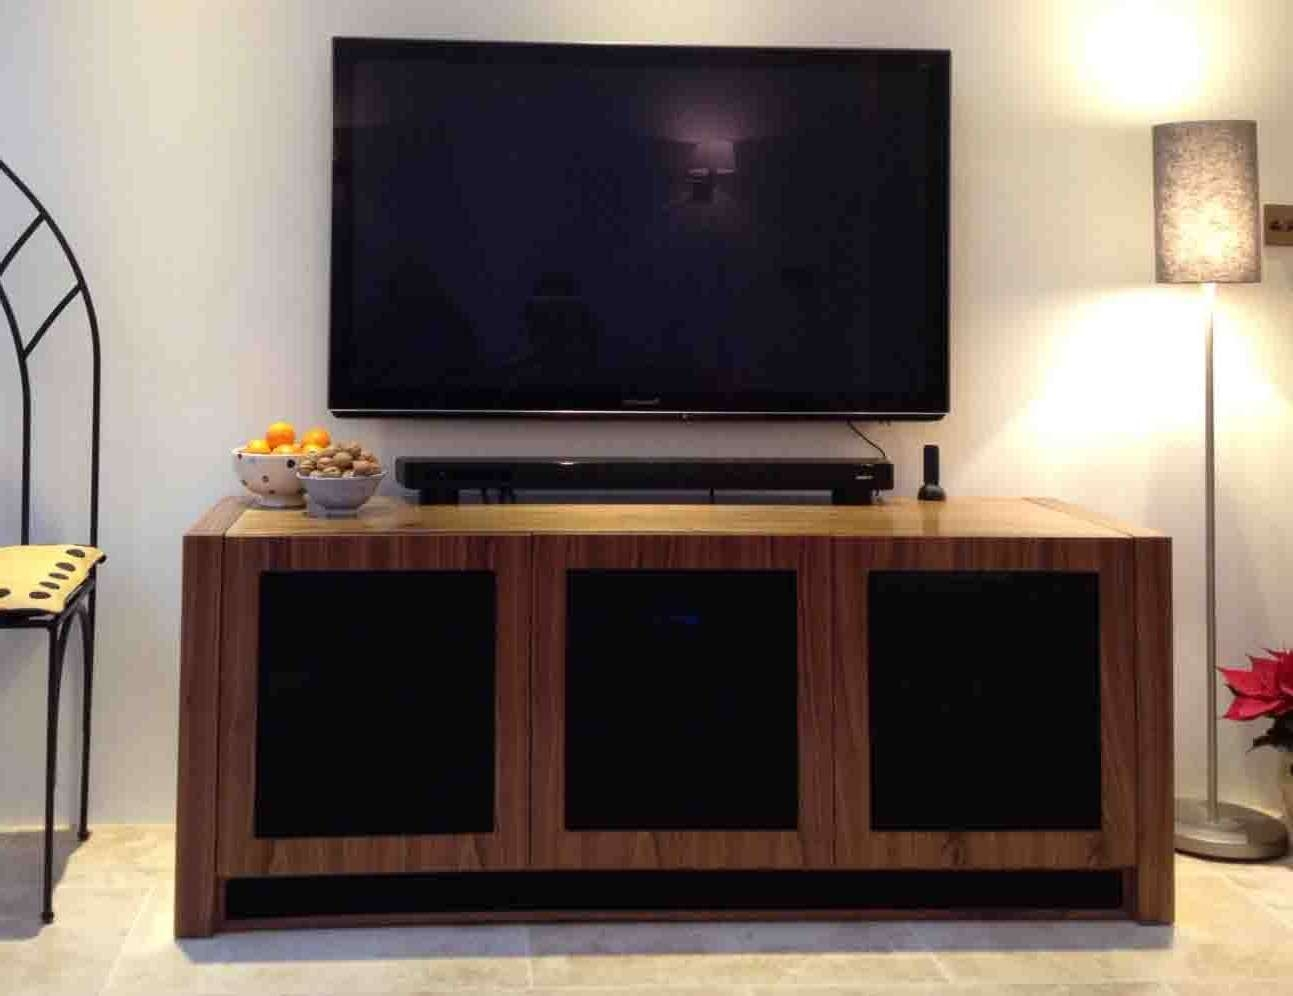 Walnut Tv Cabinets Glass Doors | Cabinet Doors And File Cabinets Within Walnut Tv Cabinets With Doors (View 19 of 20)